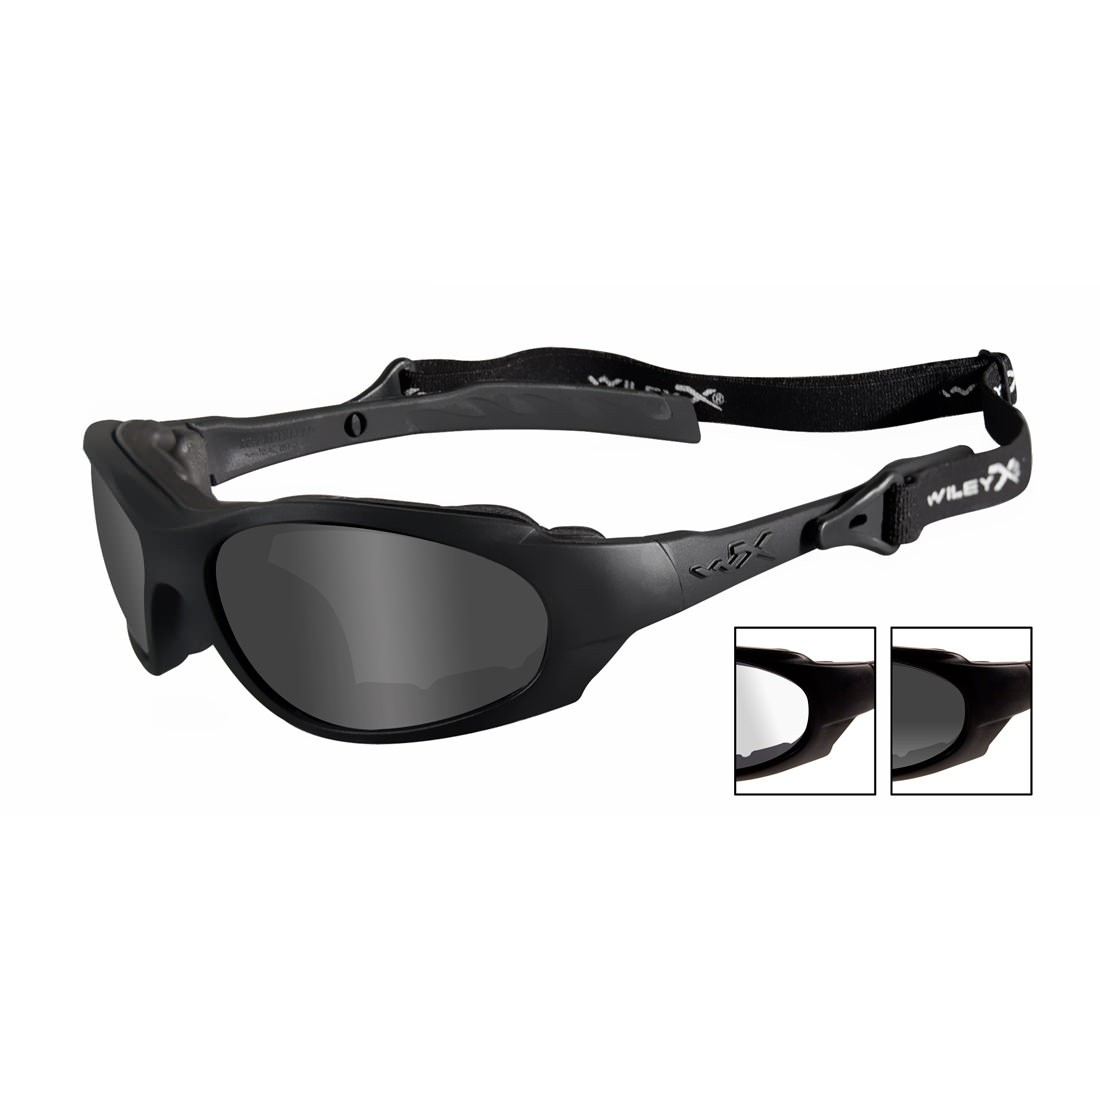 WileyX Eyewear XL-1 Sunglass/Goggle Hybrid